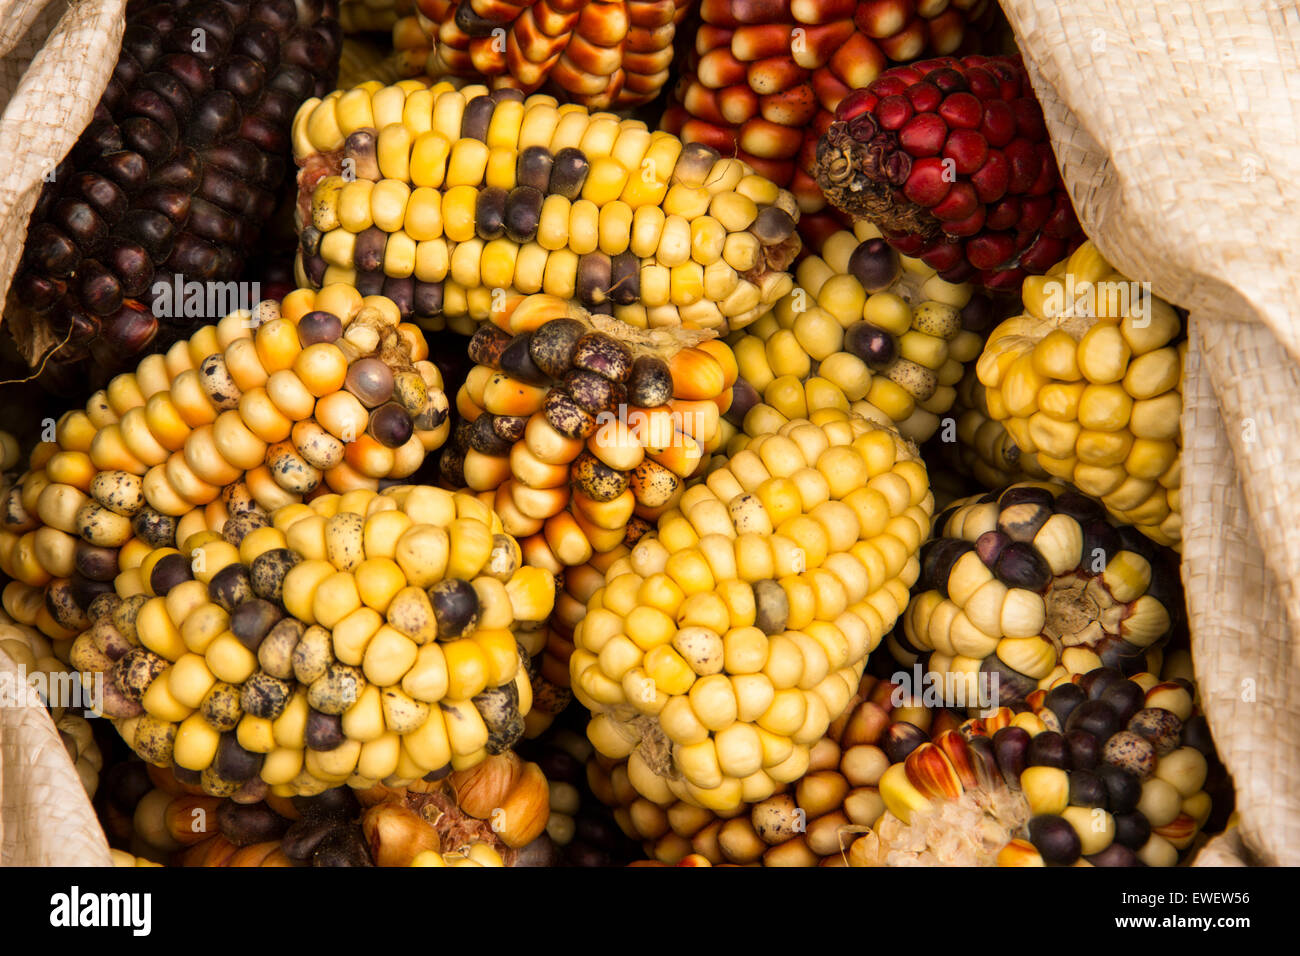 Many varieties of hand-grown corn at the rural farmers markets in Peru. - Stock Image